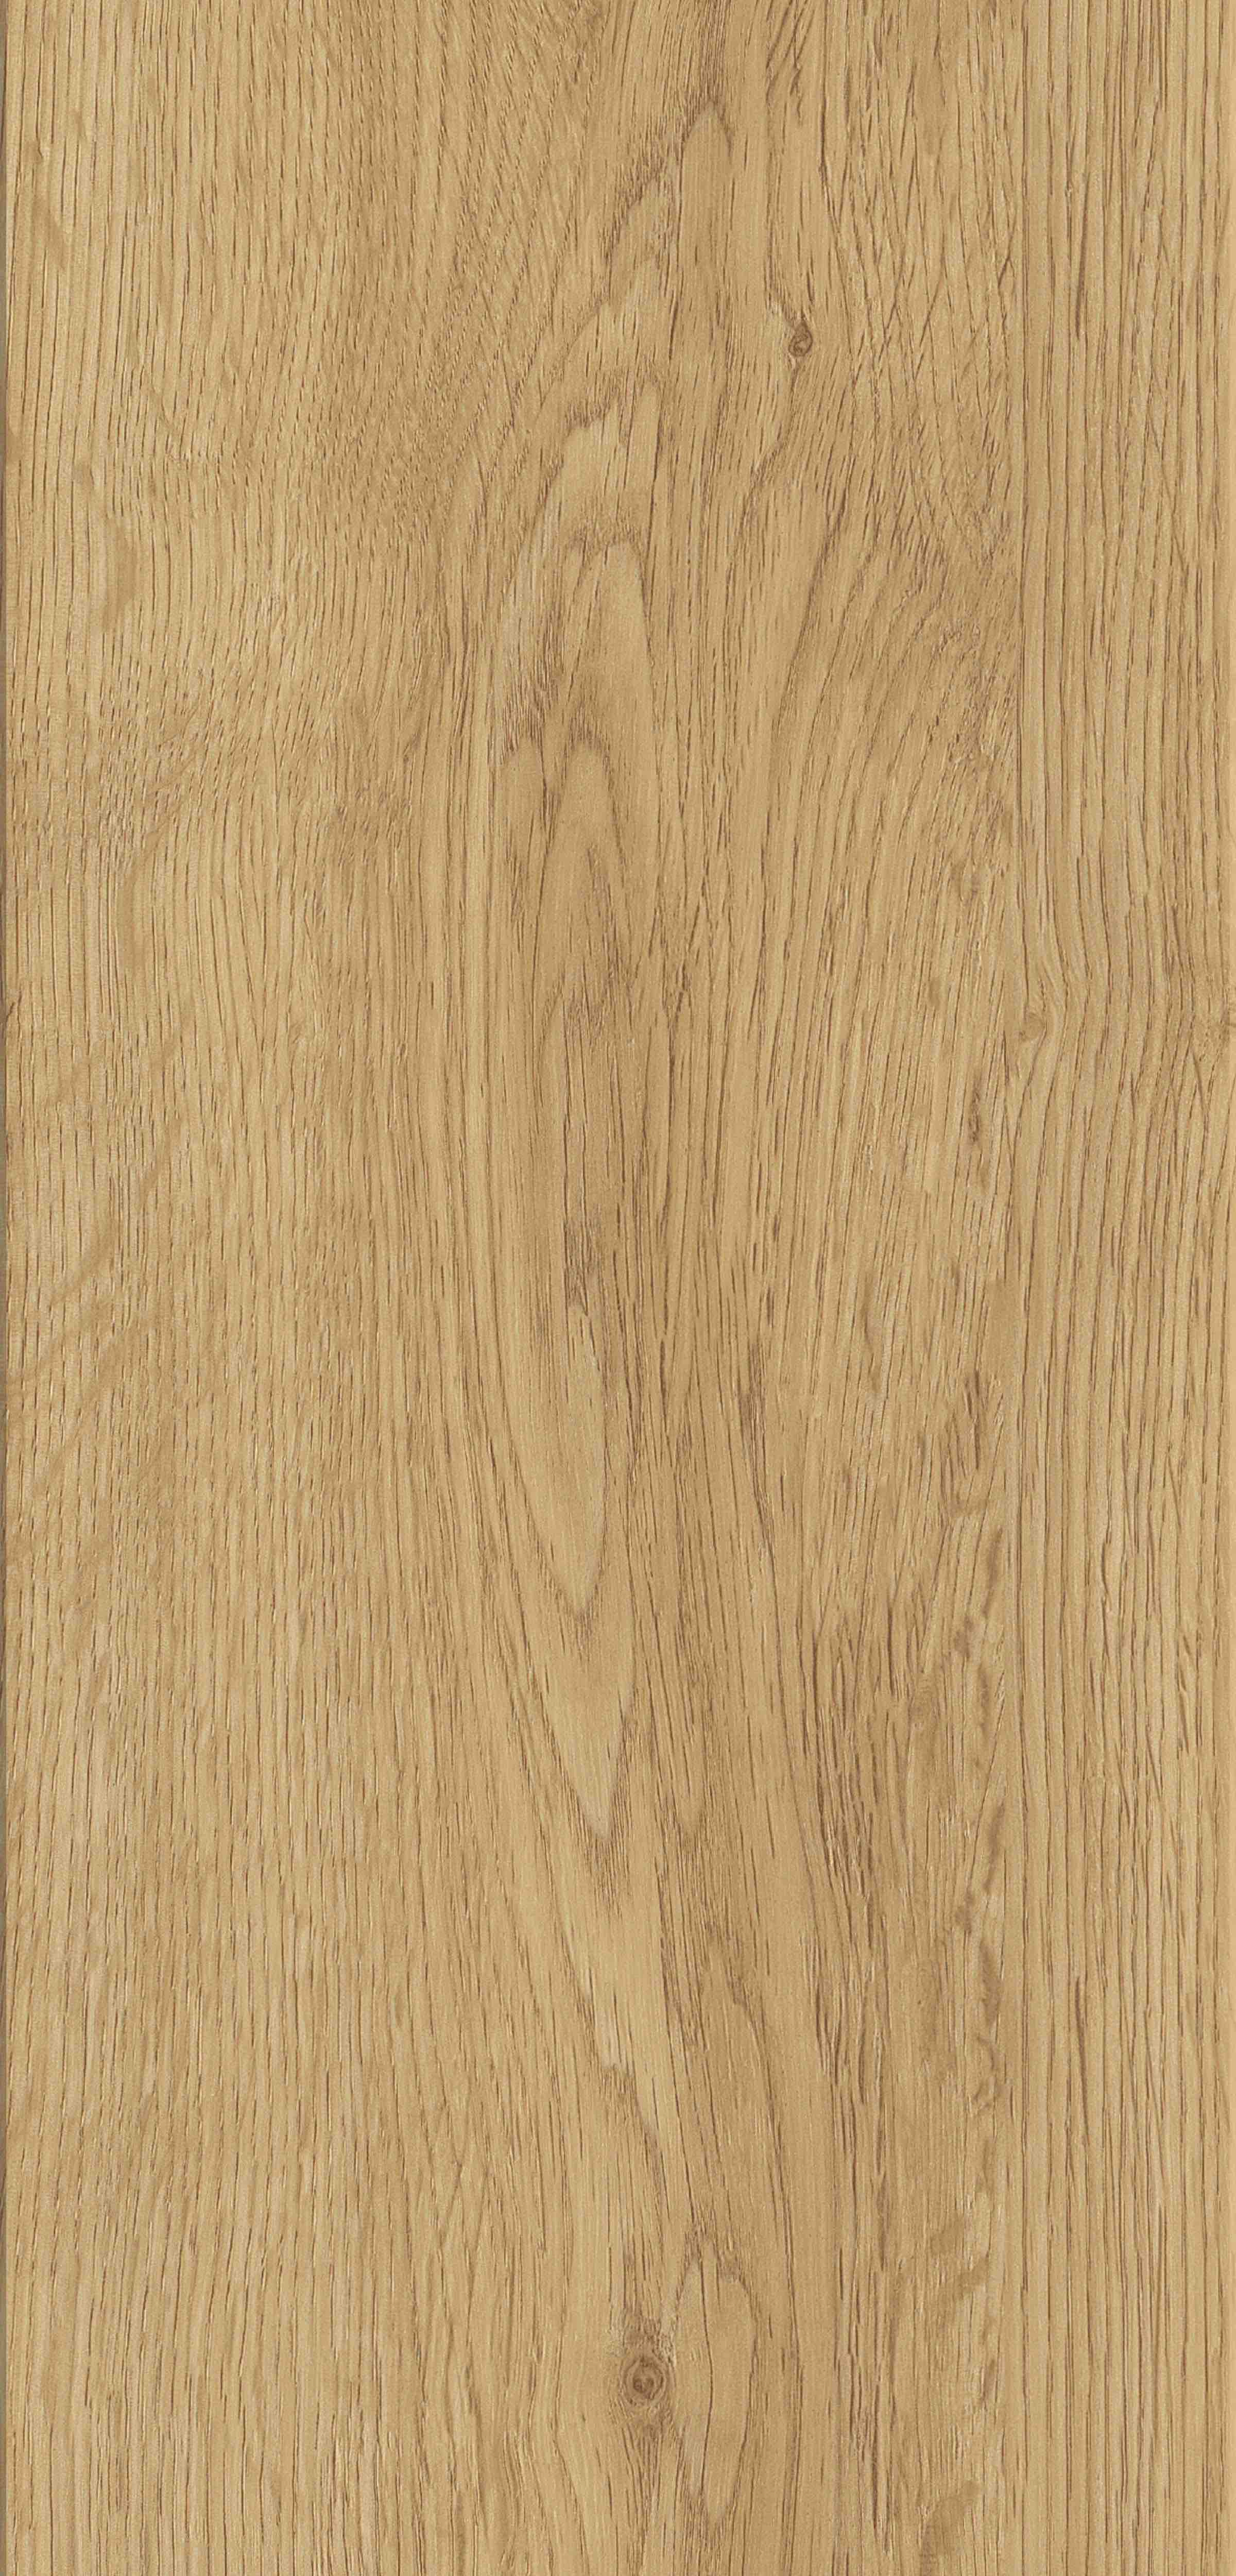 Rappórt | Bowland Oak, 2896 | Paragon Carpet Tiles | Commercial Carpet Tiles